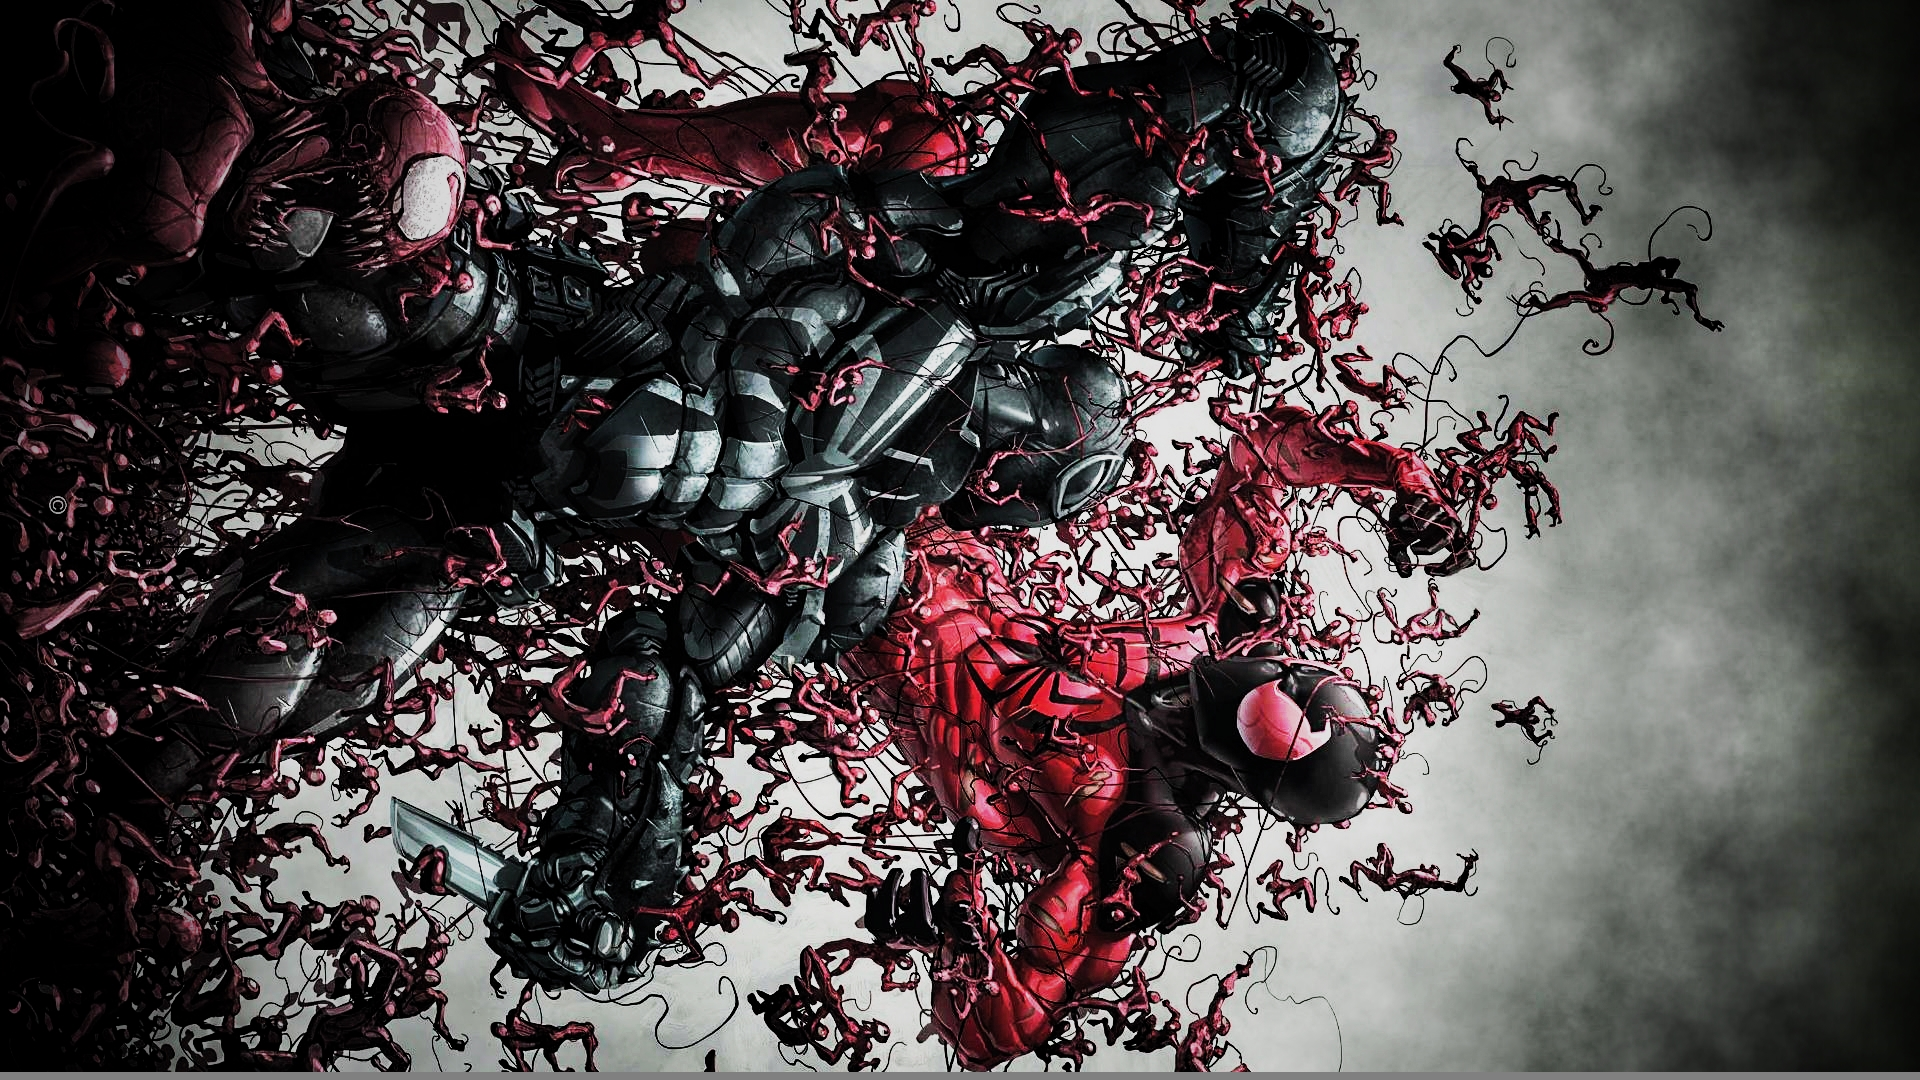 Agent Venom Vs. The Scarlet Spider by ProfessorAdagio